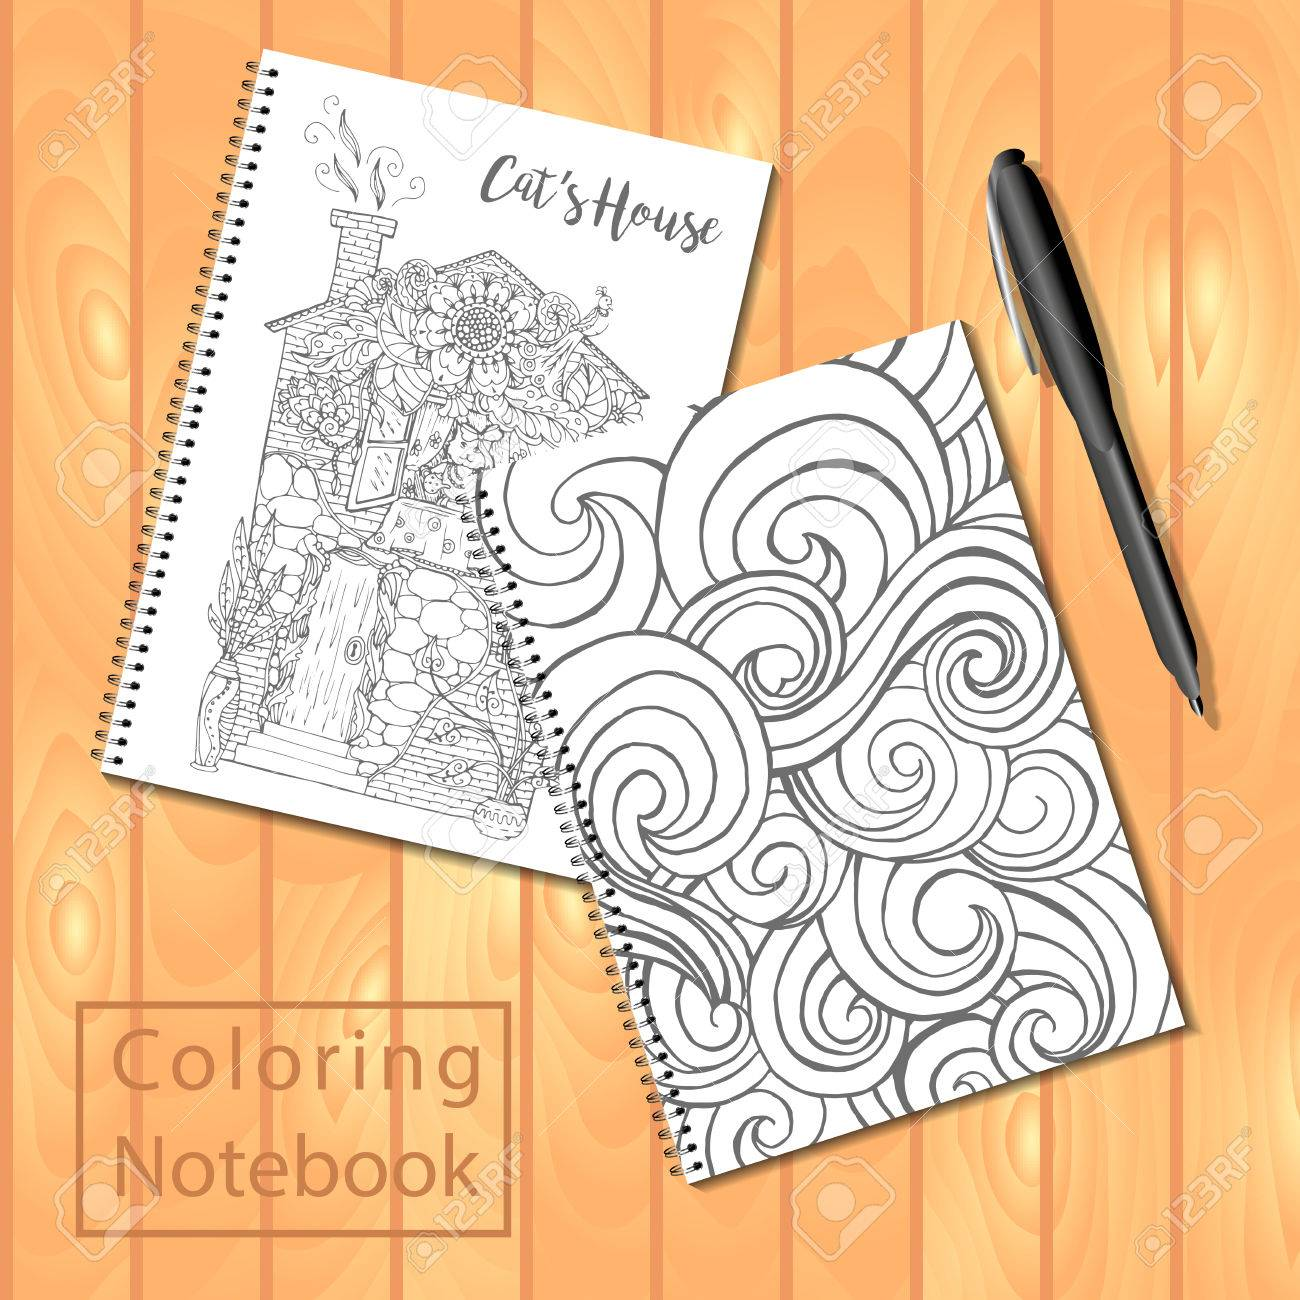 spiral bound notepads or coloring book with pen and coloring pages pictures wavy cover